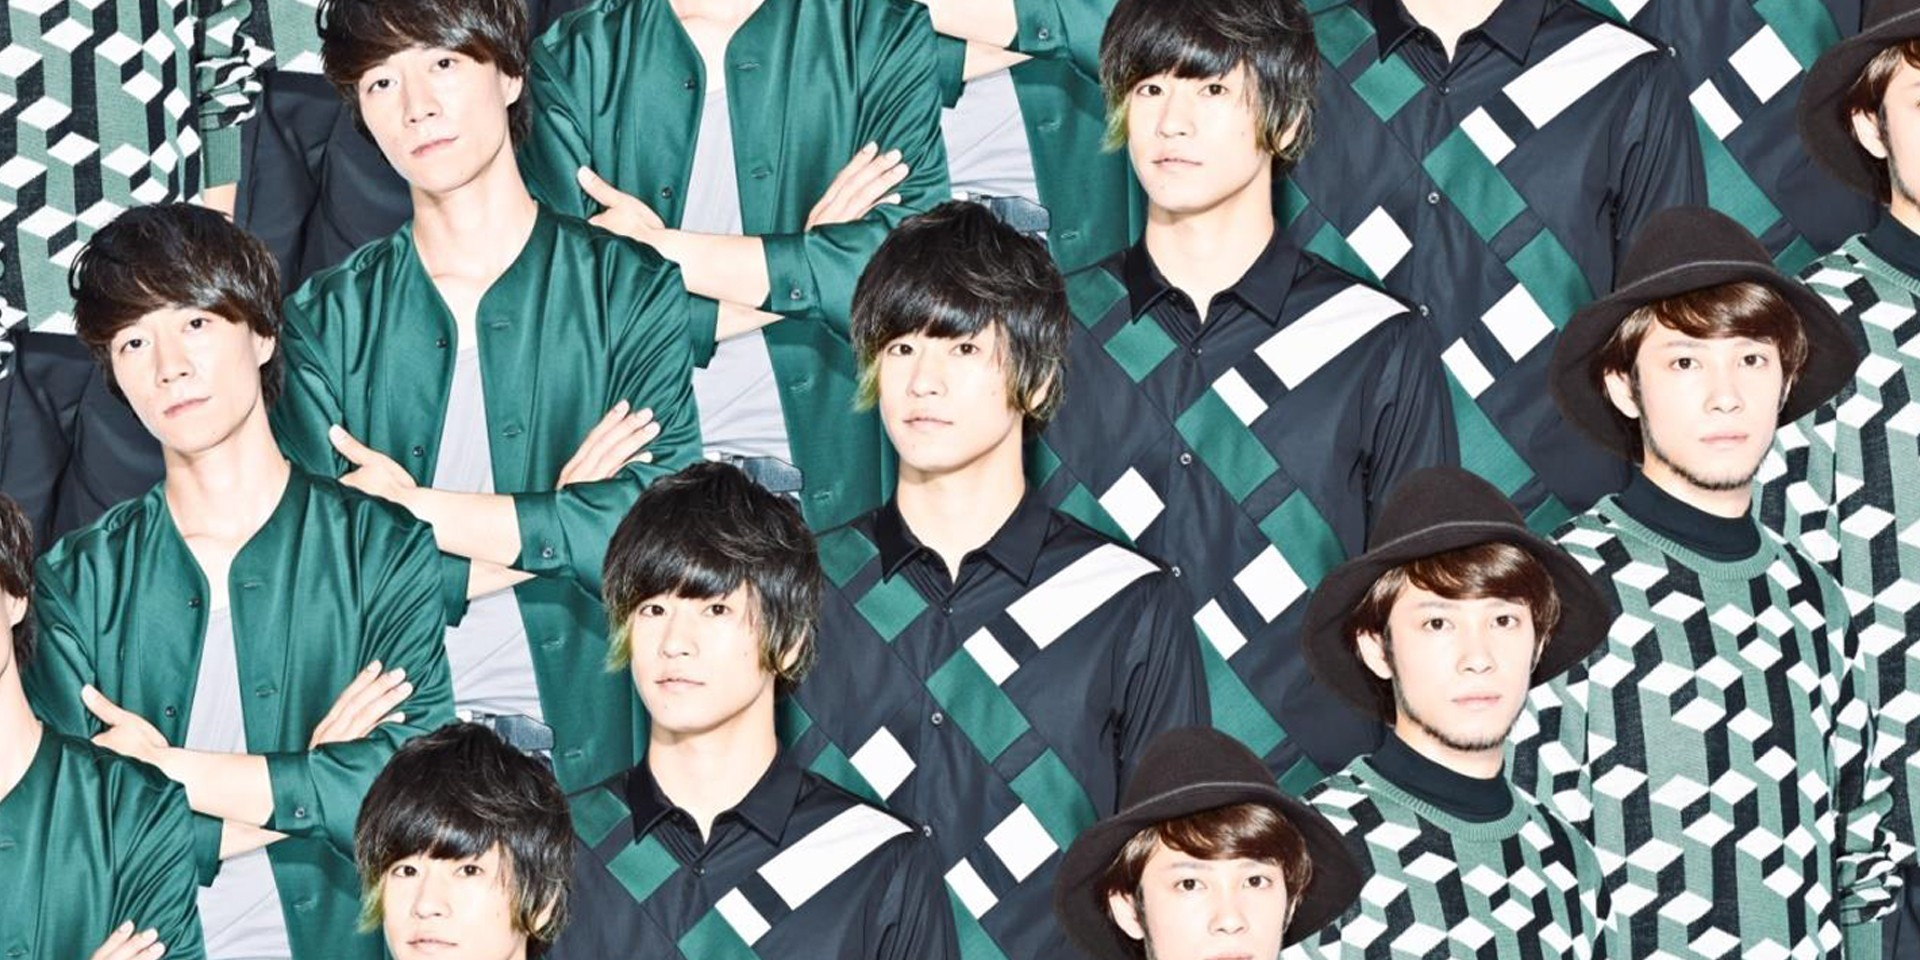 Japanese indie rock gets its due in Singapore with this special showcase